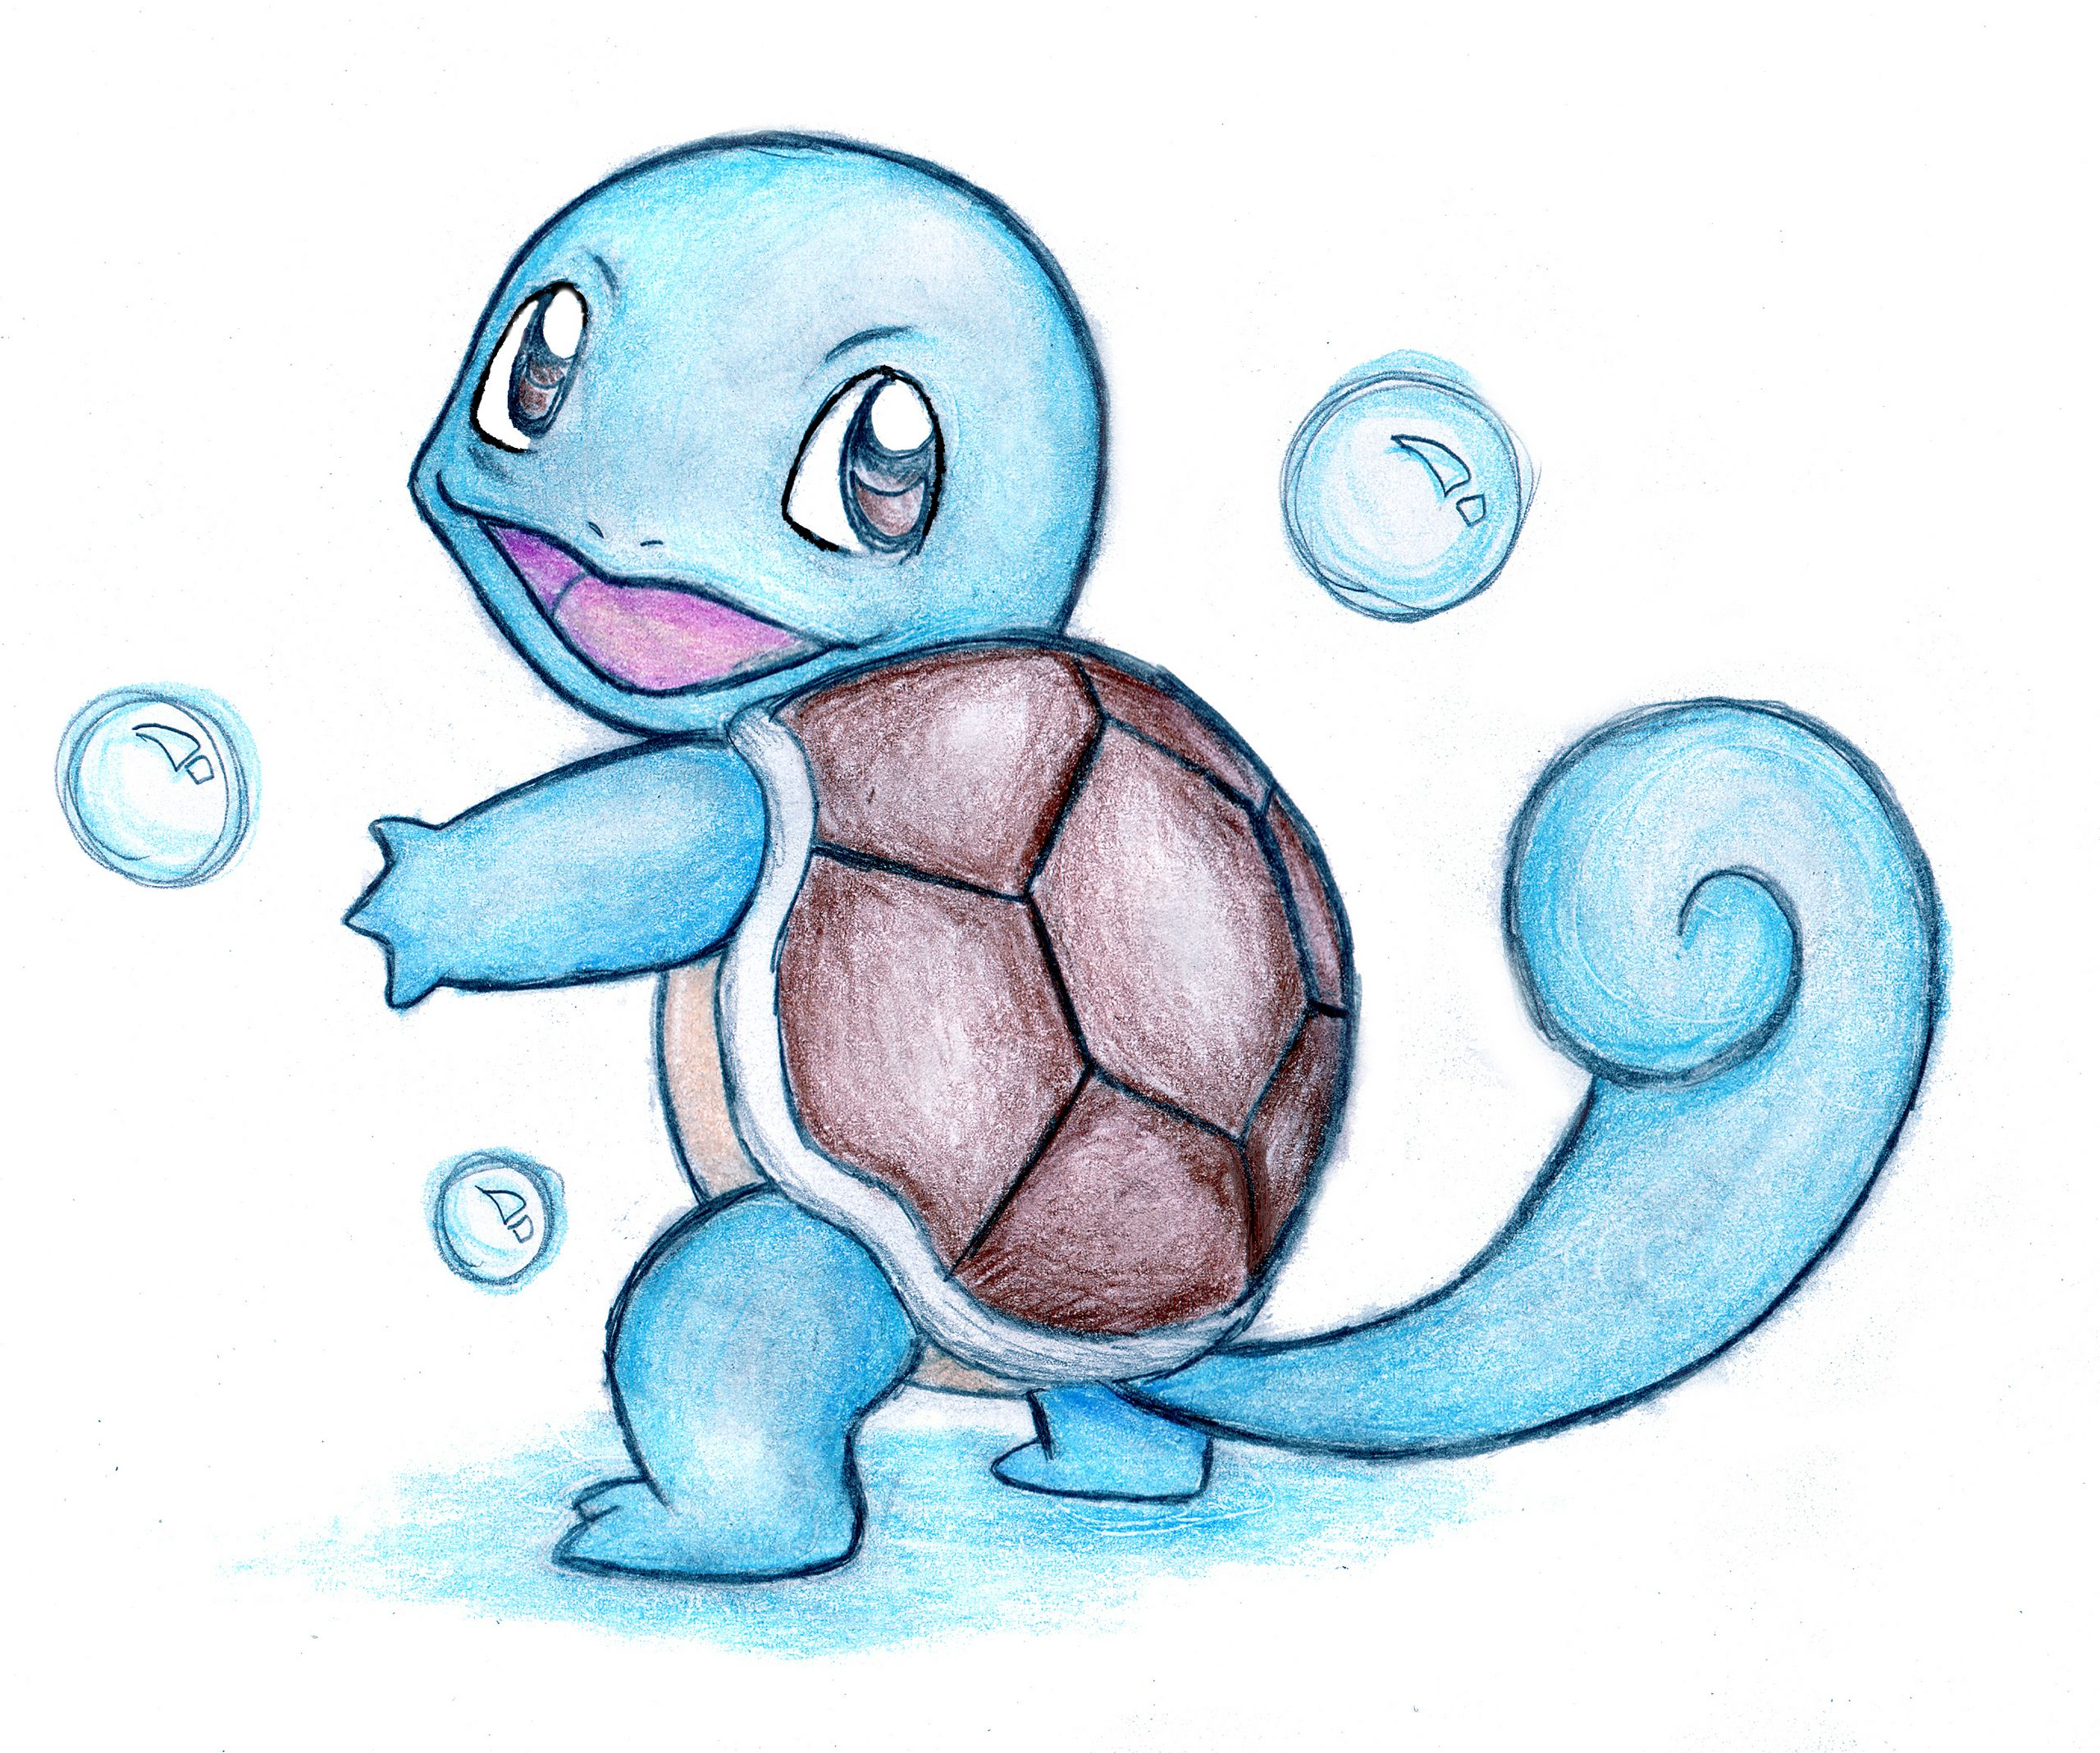 pokemon pictures | Pokémon Squirtle | Tattoos | Pinterest